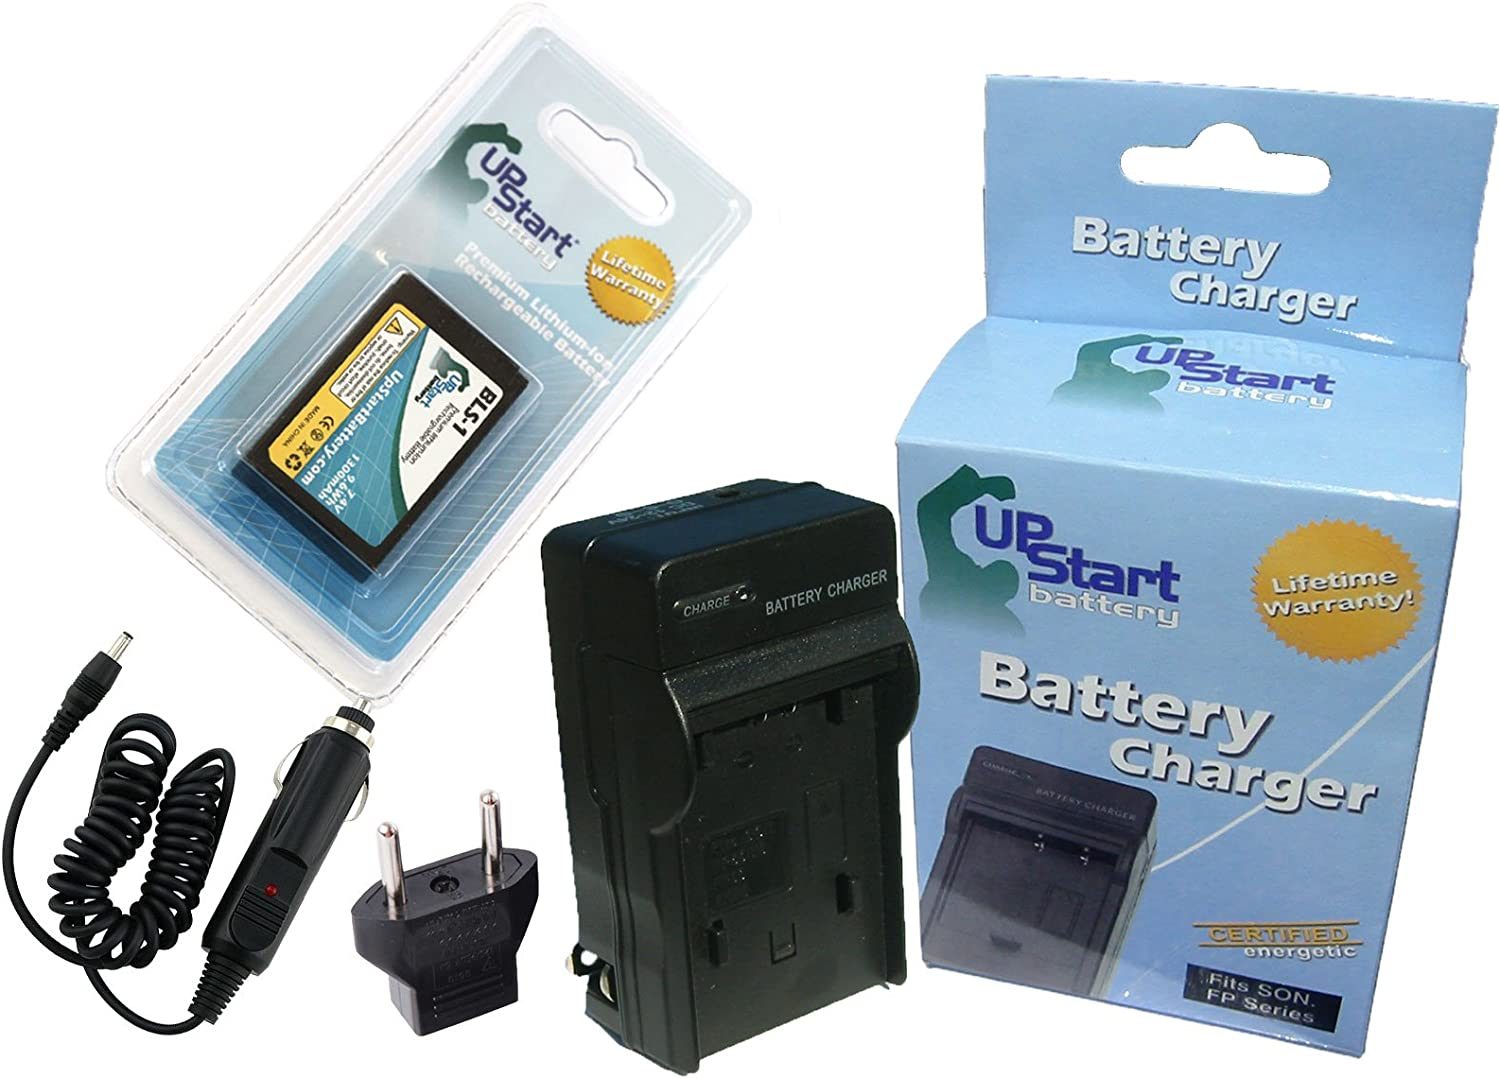 1150mAh 7.4V Lithium-Ion Replacement for Olympus E600 Battery and Charger with Car Plug and EU Adapter Compatible with Olympus BLS-1 Digital Camera Batteries and Chargers